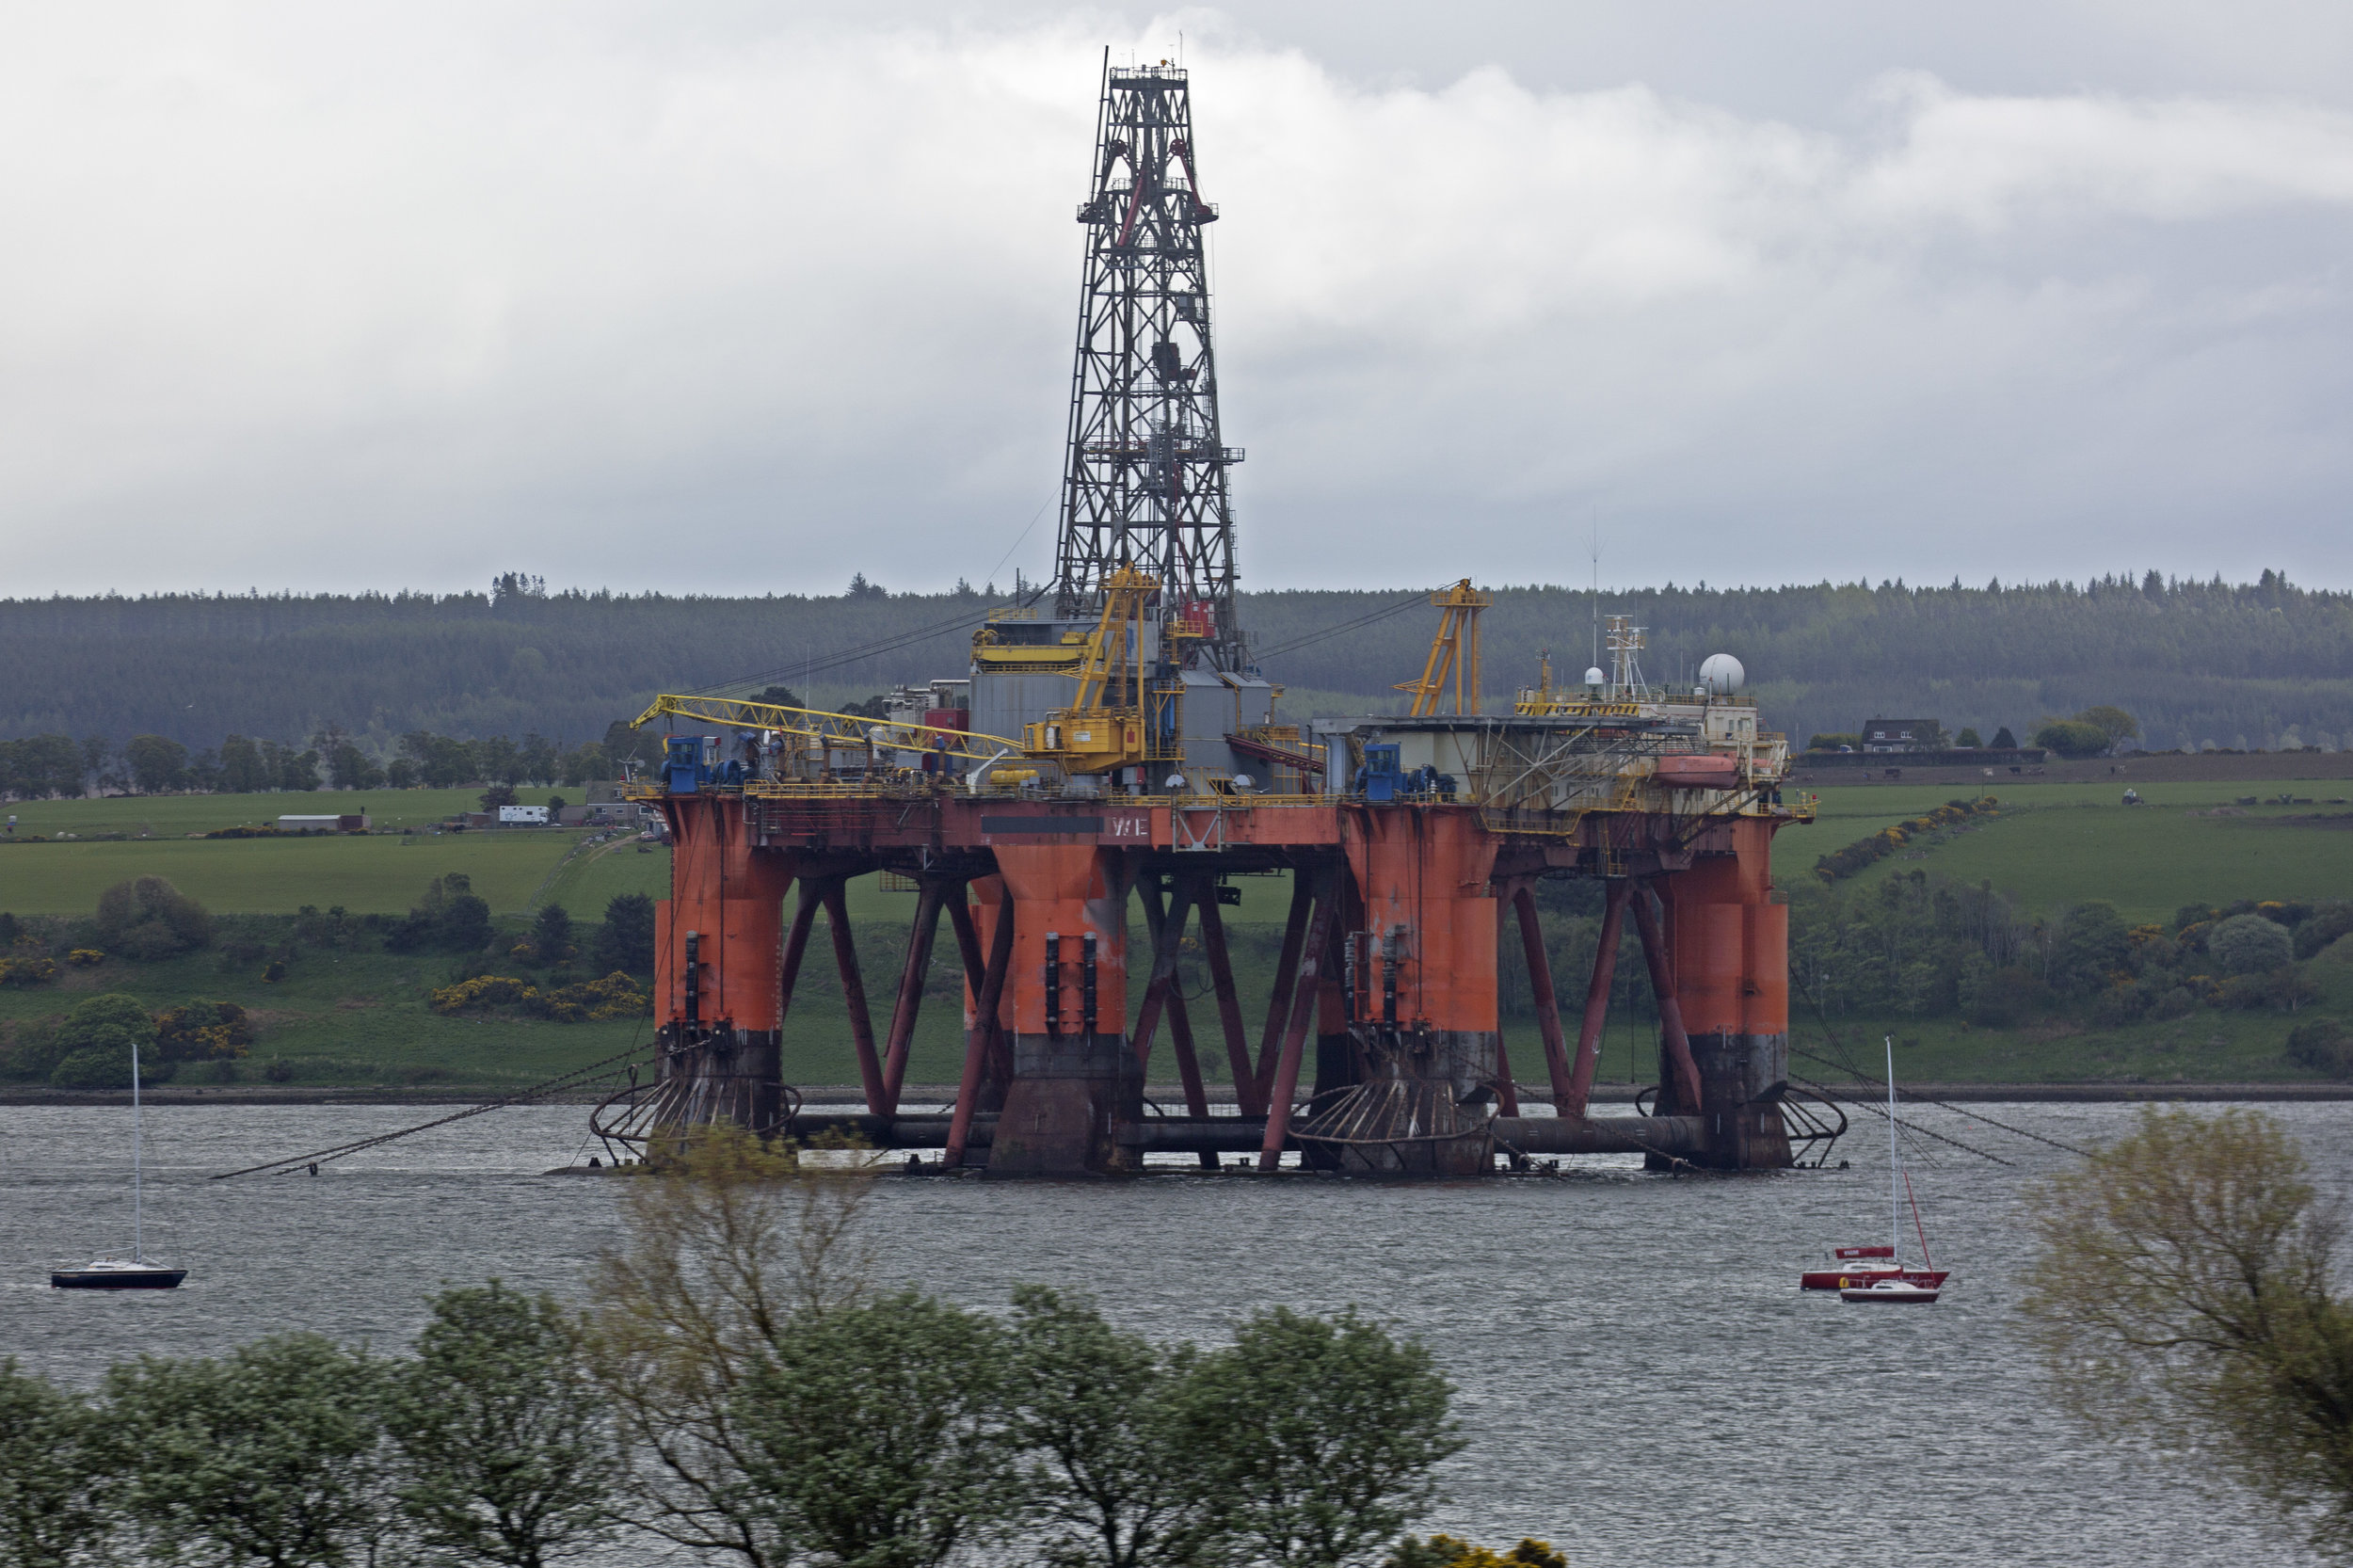 On the train headed north to Thurso.  We're traveling along the shores of Cromarty Firth.  Lots of North Sea oil rigs here for service.